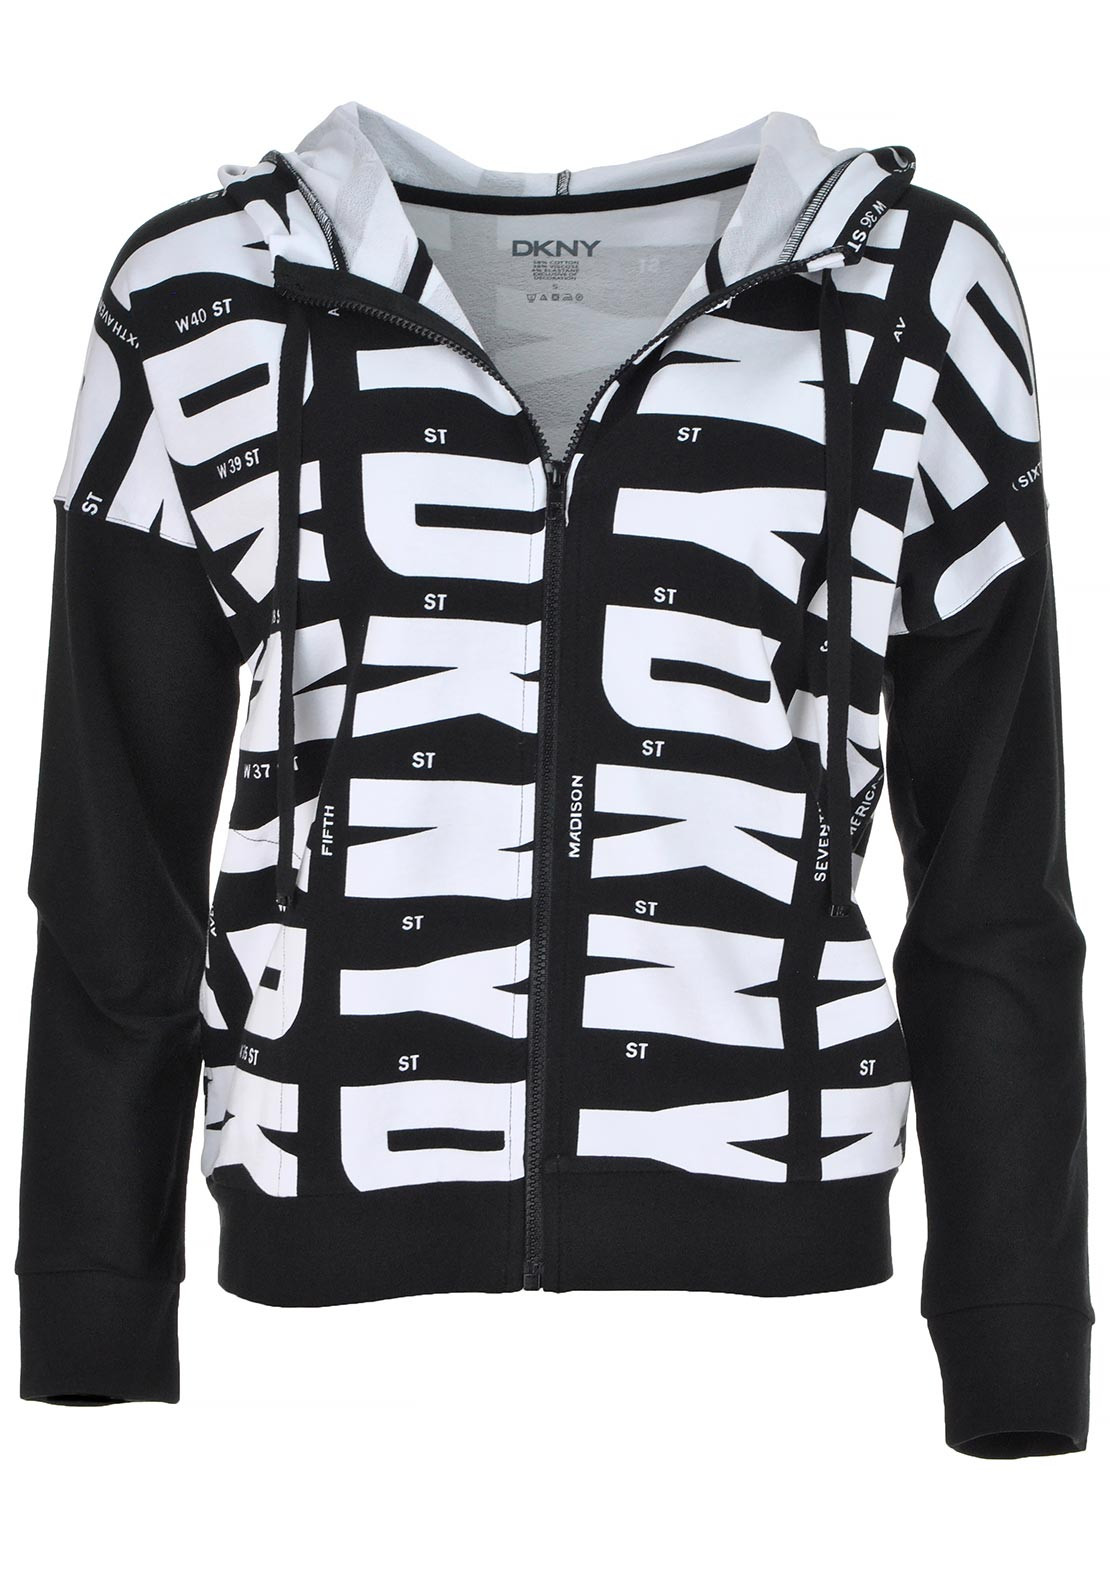 DKNY Womens Long Sleeve Logo Hoody, Black and White